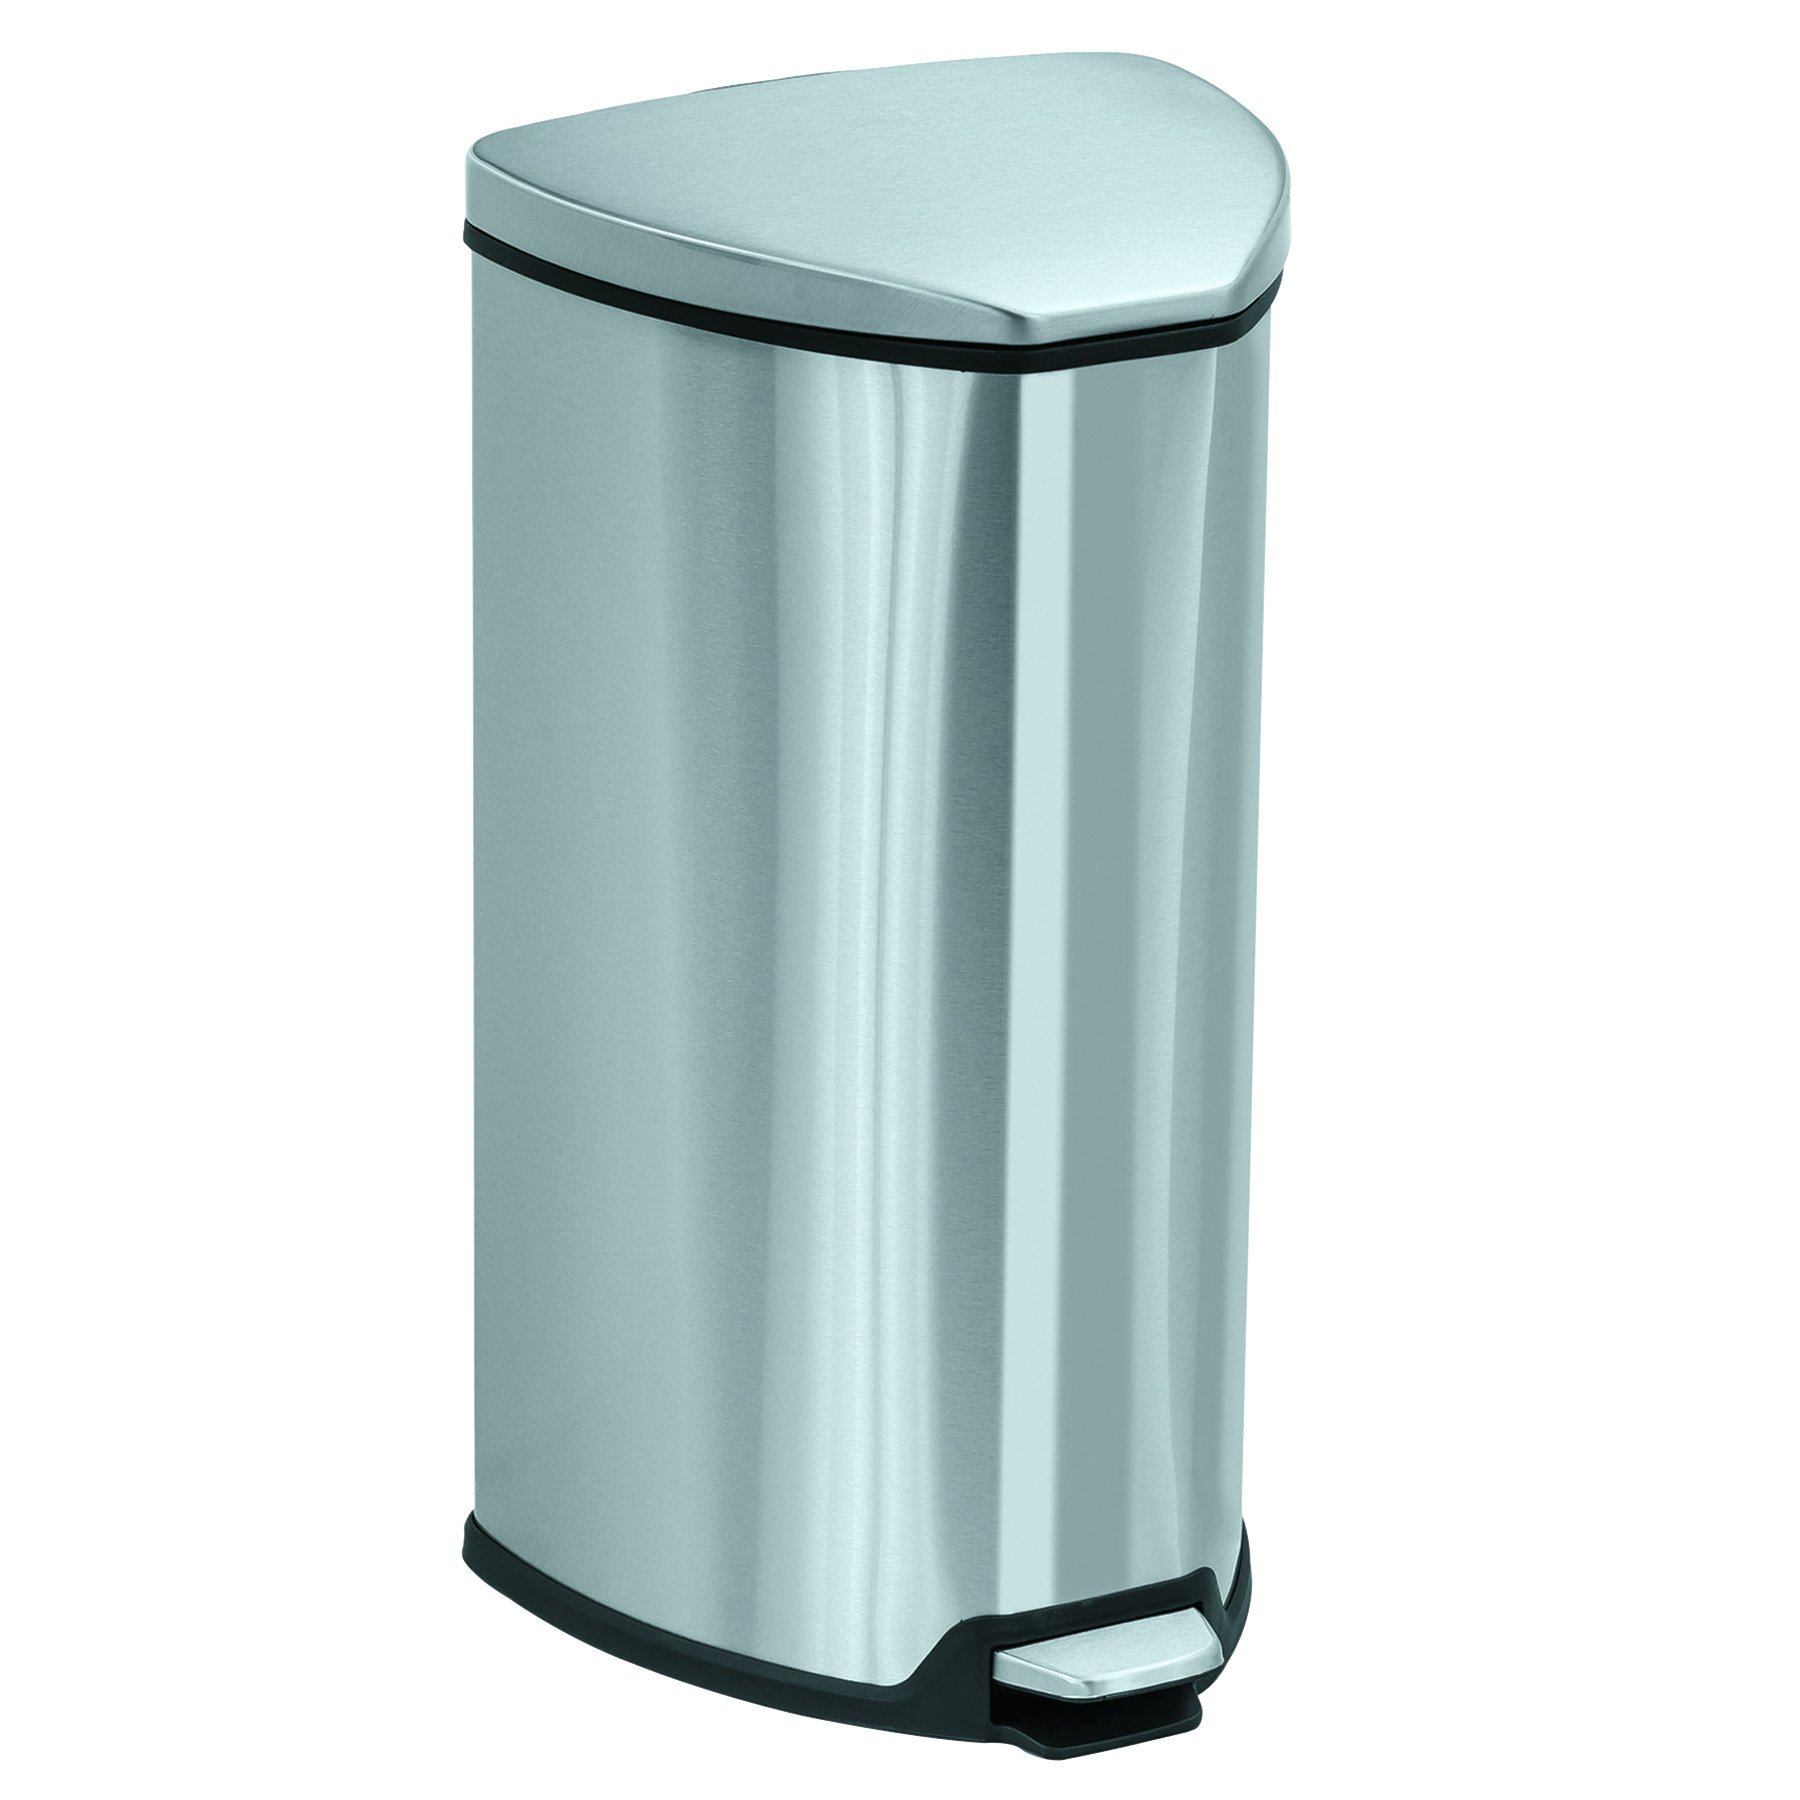 Safco Products 9686SS Stainless Step-On Trash Can, 7-Gallon, Stainless Steel